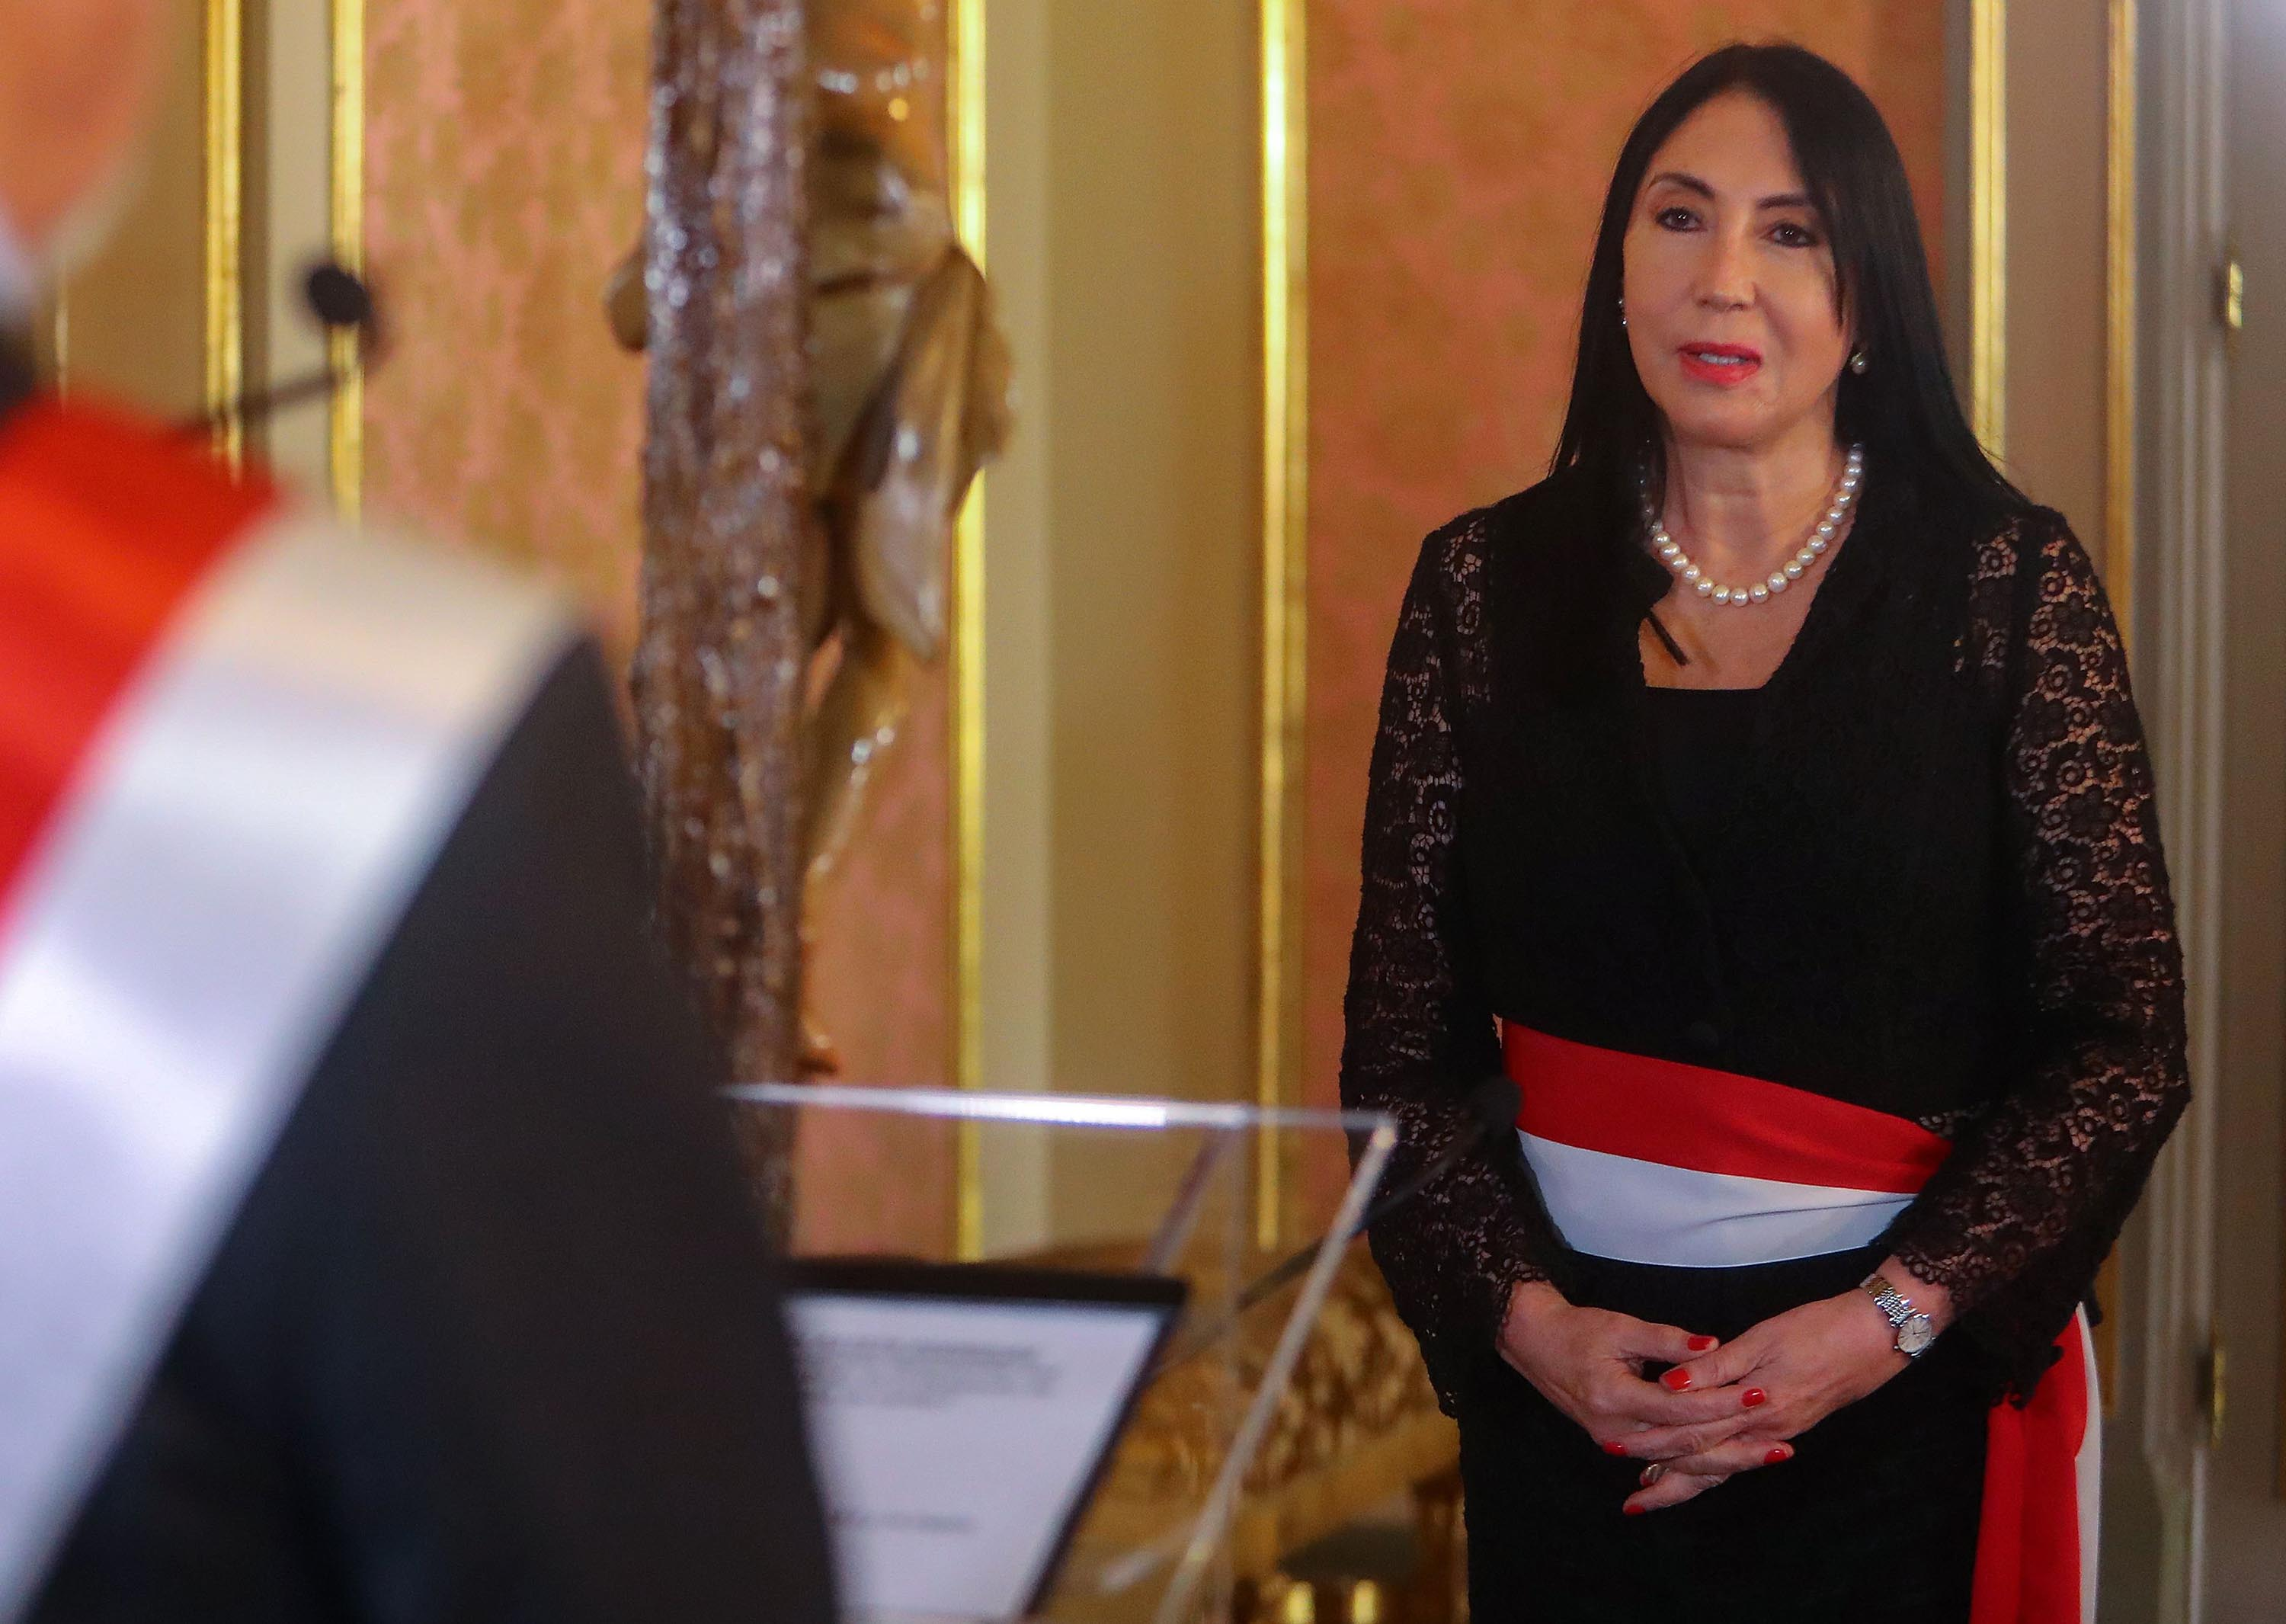 In this photo released by the Peruvian presidency, then Foreign Minister Elizabeth Astete is pictured during the inauguration ceremony of the new cabinet of President Francisco Sagasti, at the presidential palace in Lima, Peru, on November 18, 2020.